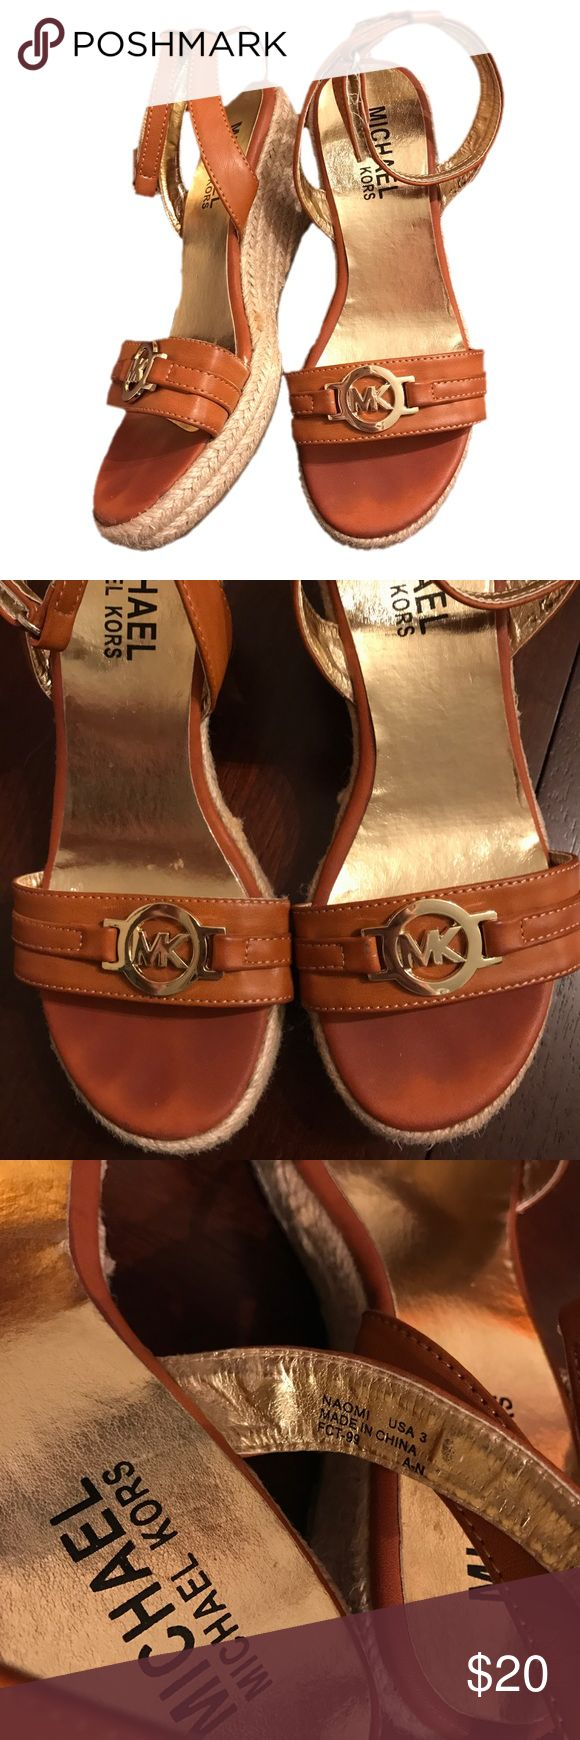 ⭐ Michael Kors size 3 Camel color sandal wedges ⭐ Michael Kors size 3 Camel color sandal wedges. Velcro closure on ankle strap. In very good used condition. Toe imprints where bottom of toes touch shoes and mild wear on heel. Beautiful shoes Michael Kors Shoes Sandals & Flip Flops